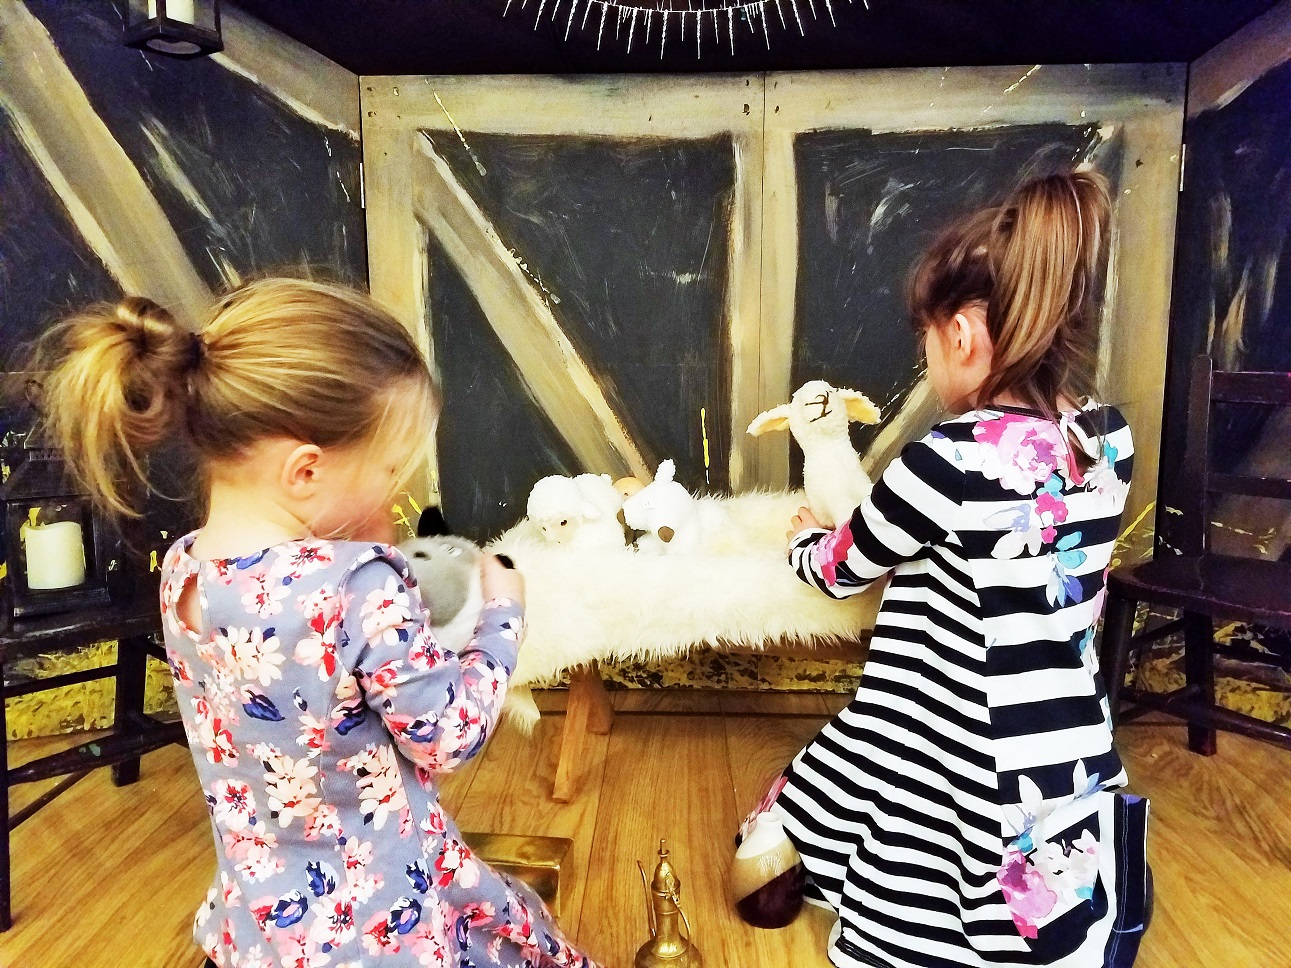 Anxiety - Children playing in a nativity stable with sheep